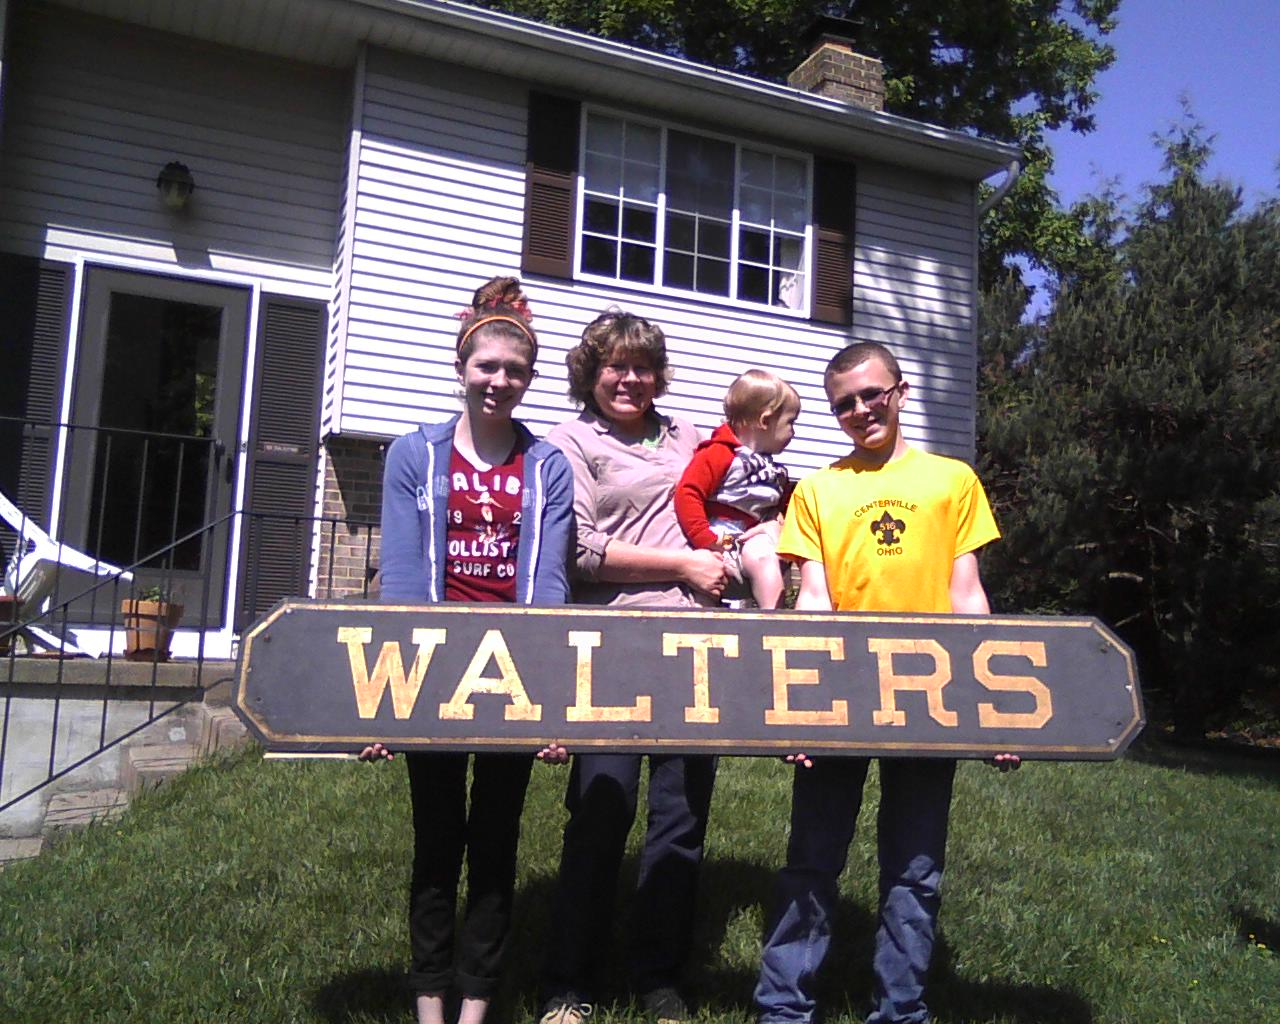 May 12, 2013 / Vienna, VA  Lehigh Valley Railroad, Easton & Northern Branch, railroad passenger station sign from Walters, {Easton} Northampton County, PA  Holding the railroad station sign originally from Walters Upper Mill Station or Walters Lower Mill Station {near Easton, Pennsylvania.} Left to right Megan R. Walter-Johnson, Anna Marie Walter, Carter T. Walter-Johnson, Jacob D. Walter-Johnson of Centreville, VA {wearing a scout shirt gift from Centerville, OH troop, seen on one of two photos}.  Anna is the daughter of the writer, Megan and Jacob grandchildren and Carter a great grand child. Photographed by Richard J. Walter of Vienna, VA  Note: It is believed the sign actually came from the Walters Lower Mill Station.